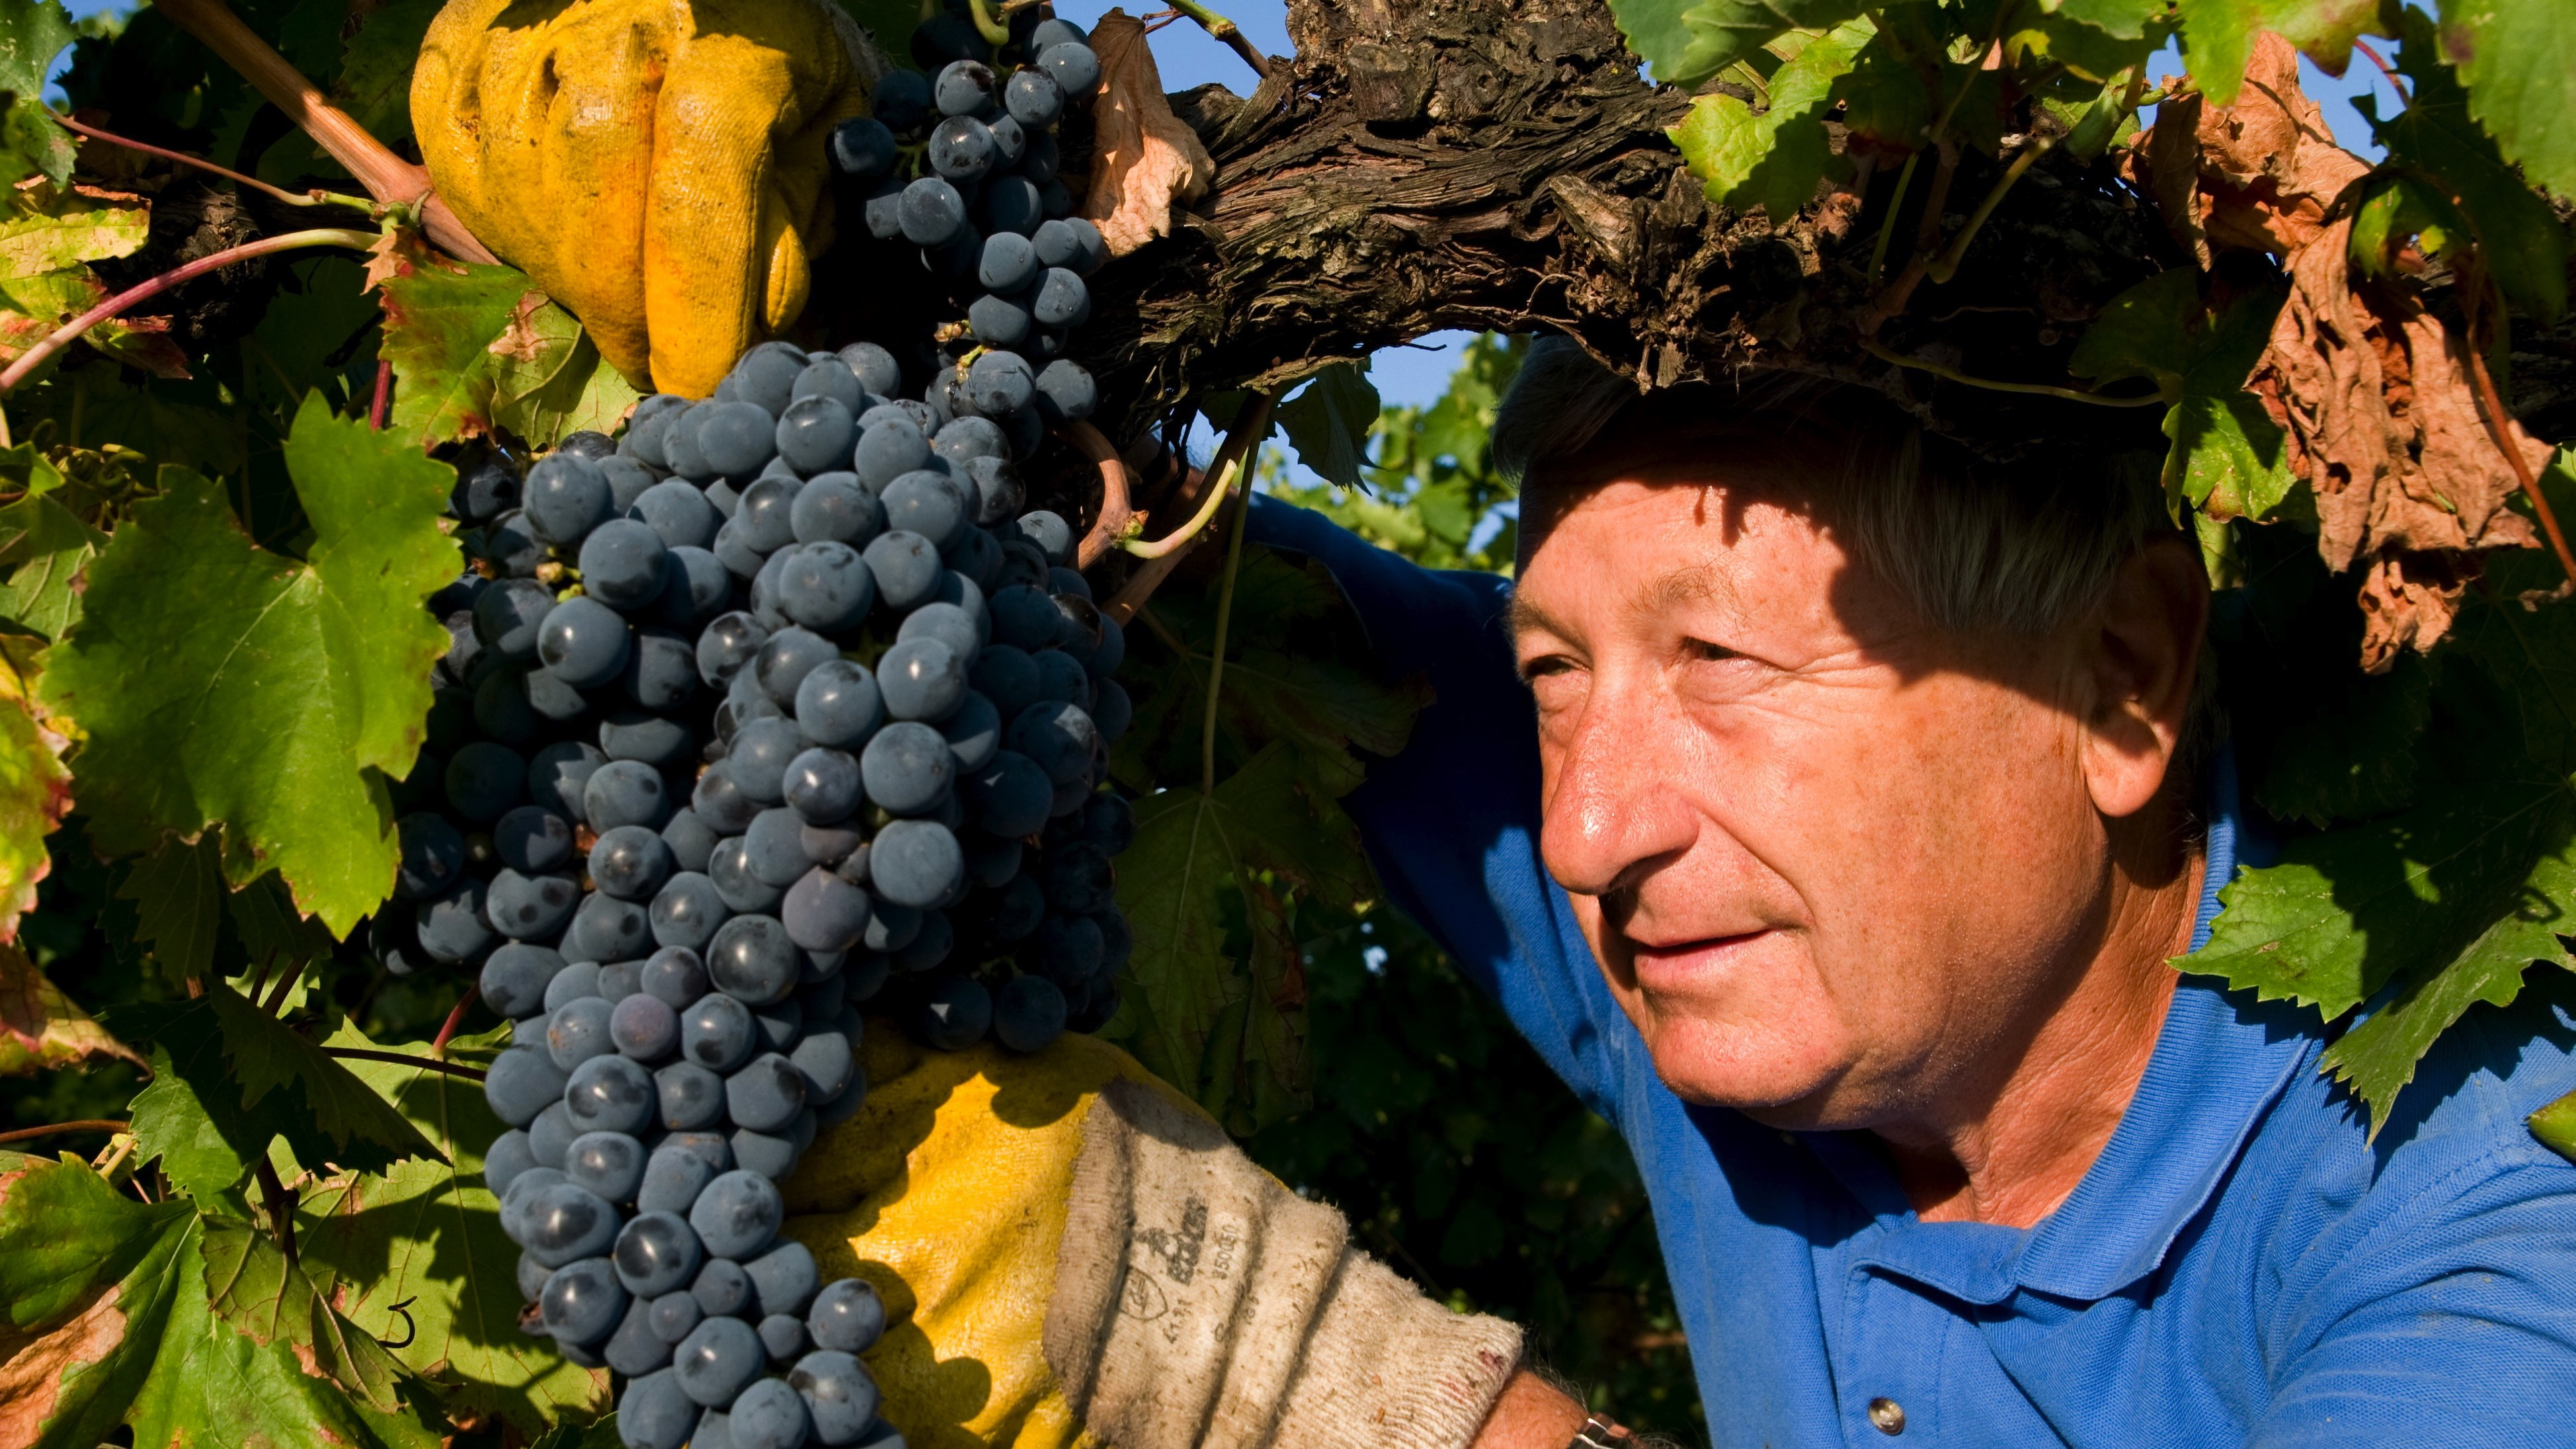 Sergio, a grape picker, snips a plump Sangiovese cluster at the Umberto Cesari vineyards.